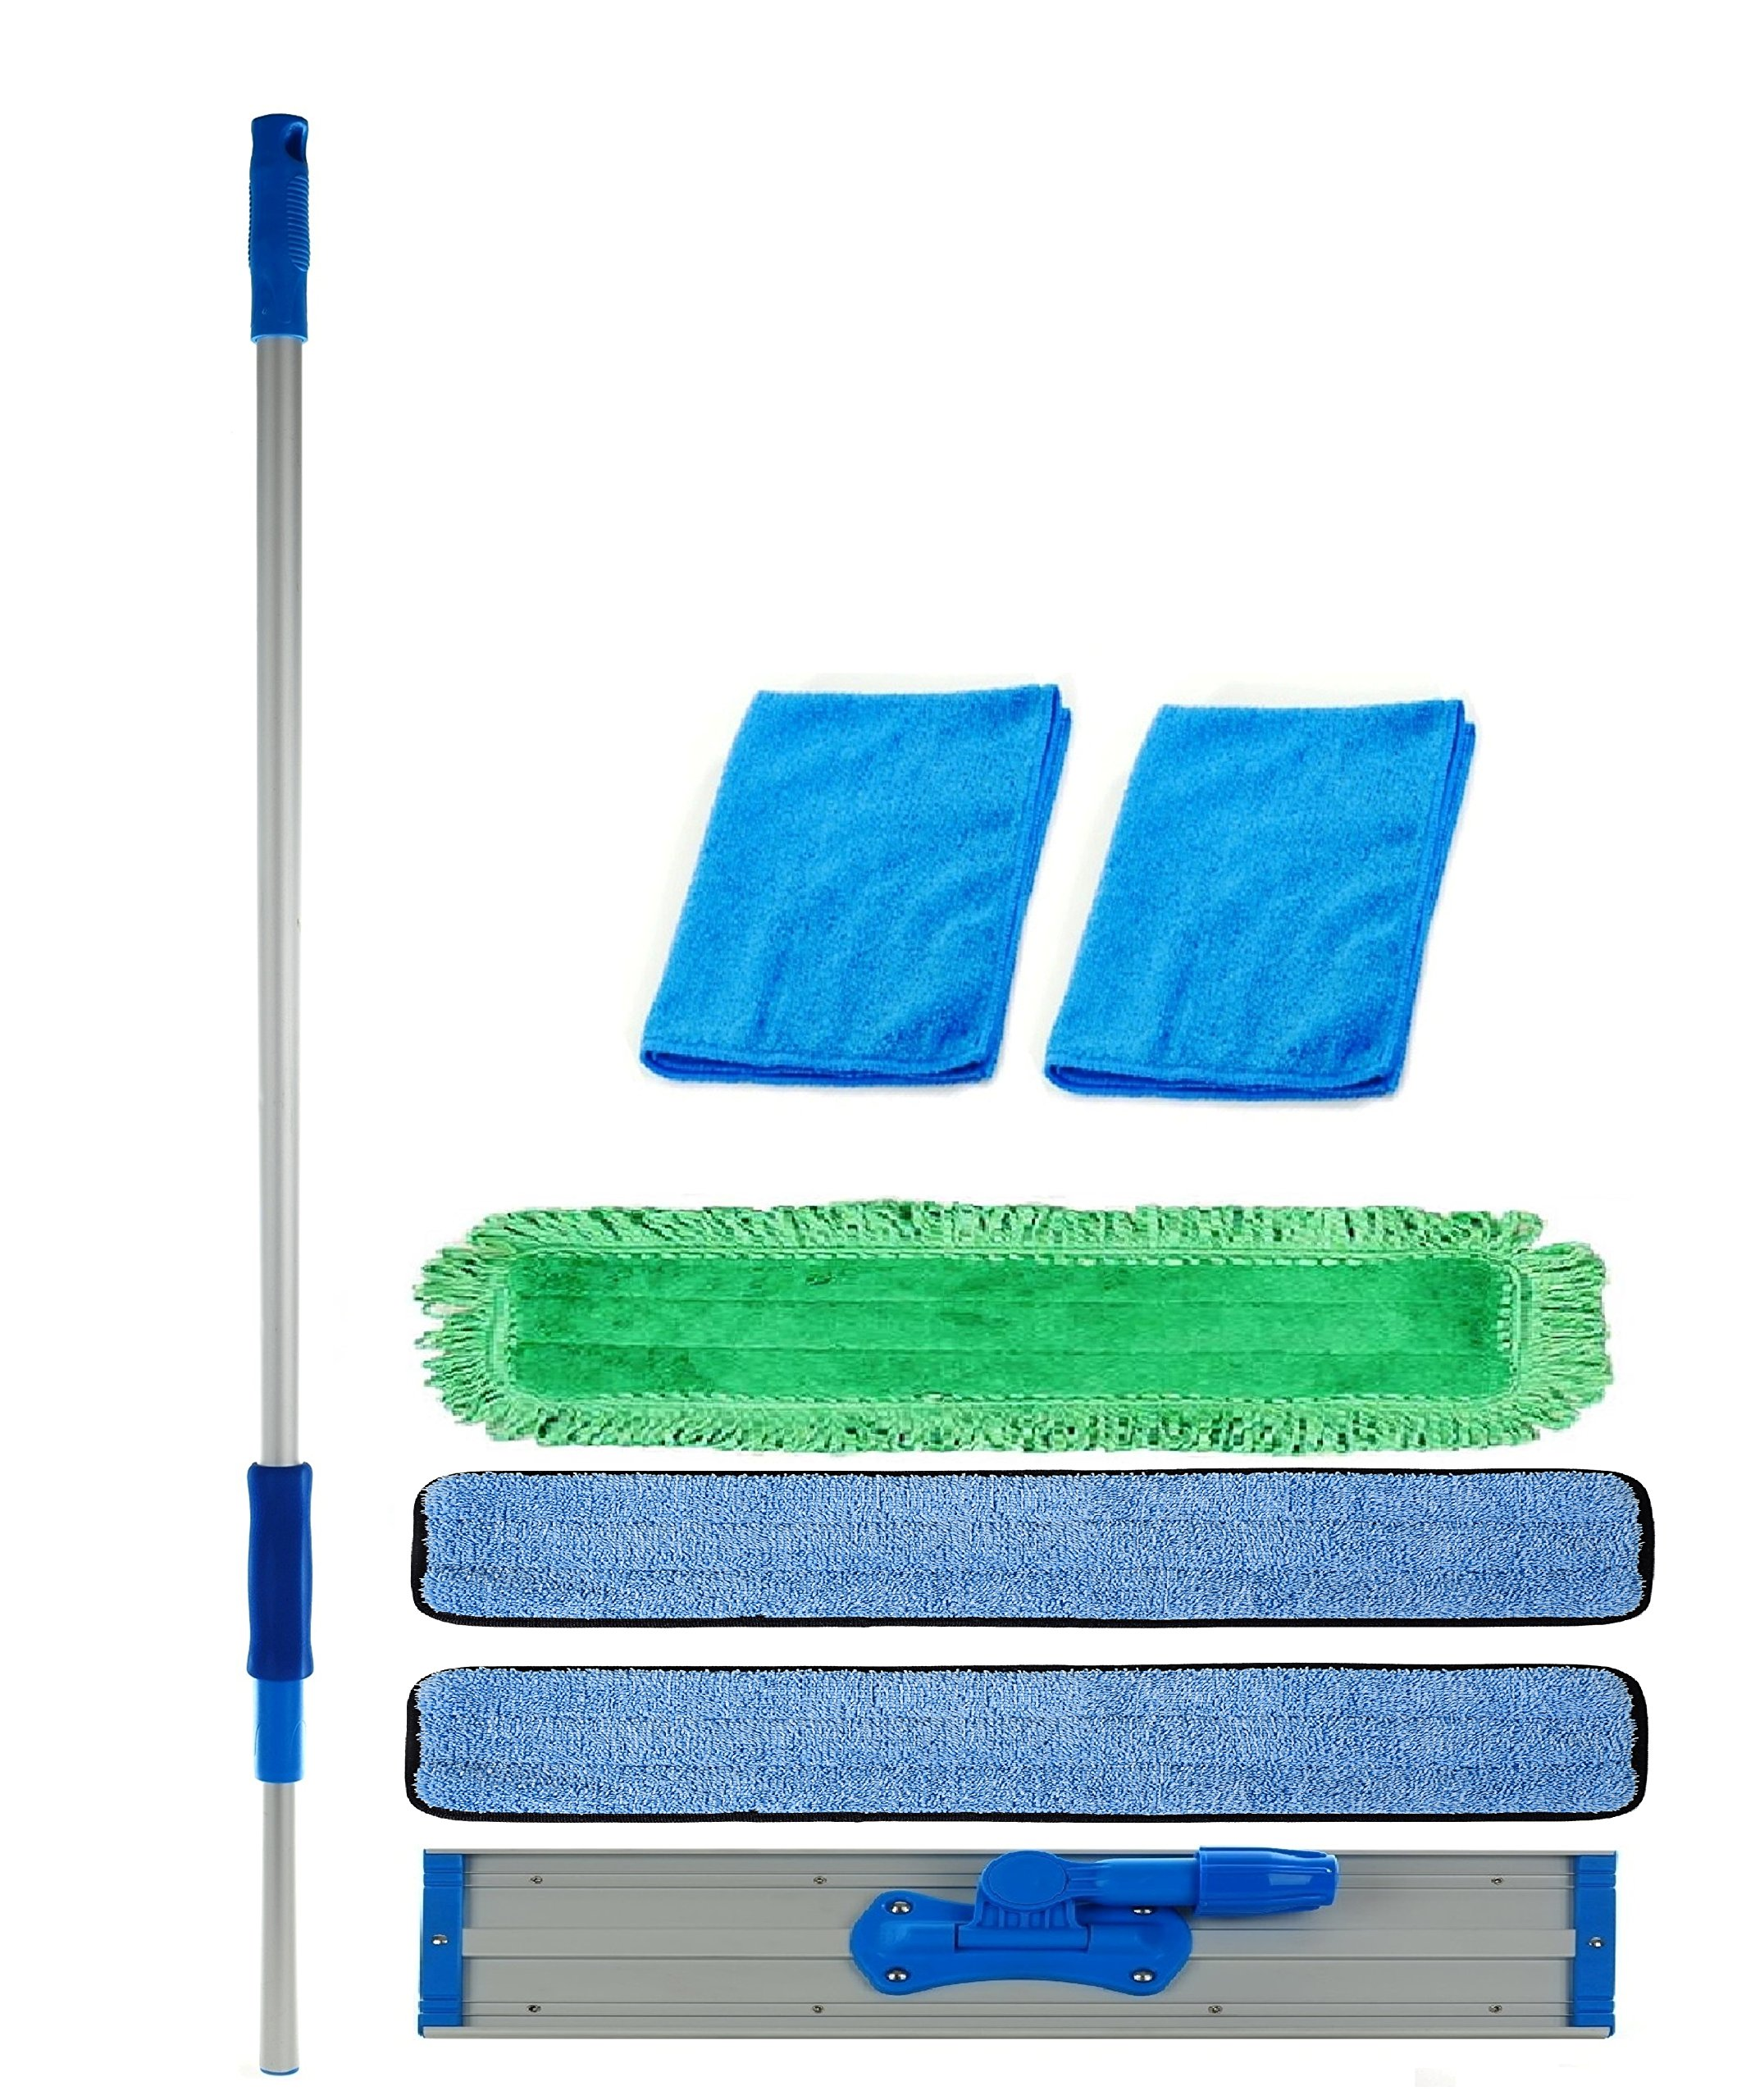 Real Clean 48 inch Professional Commercial Microfiber Mop With Three 48'' Microfiber Mop Pads and 2 Bonus Microfiber Towels